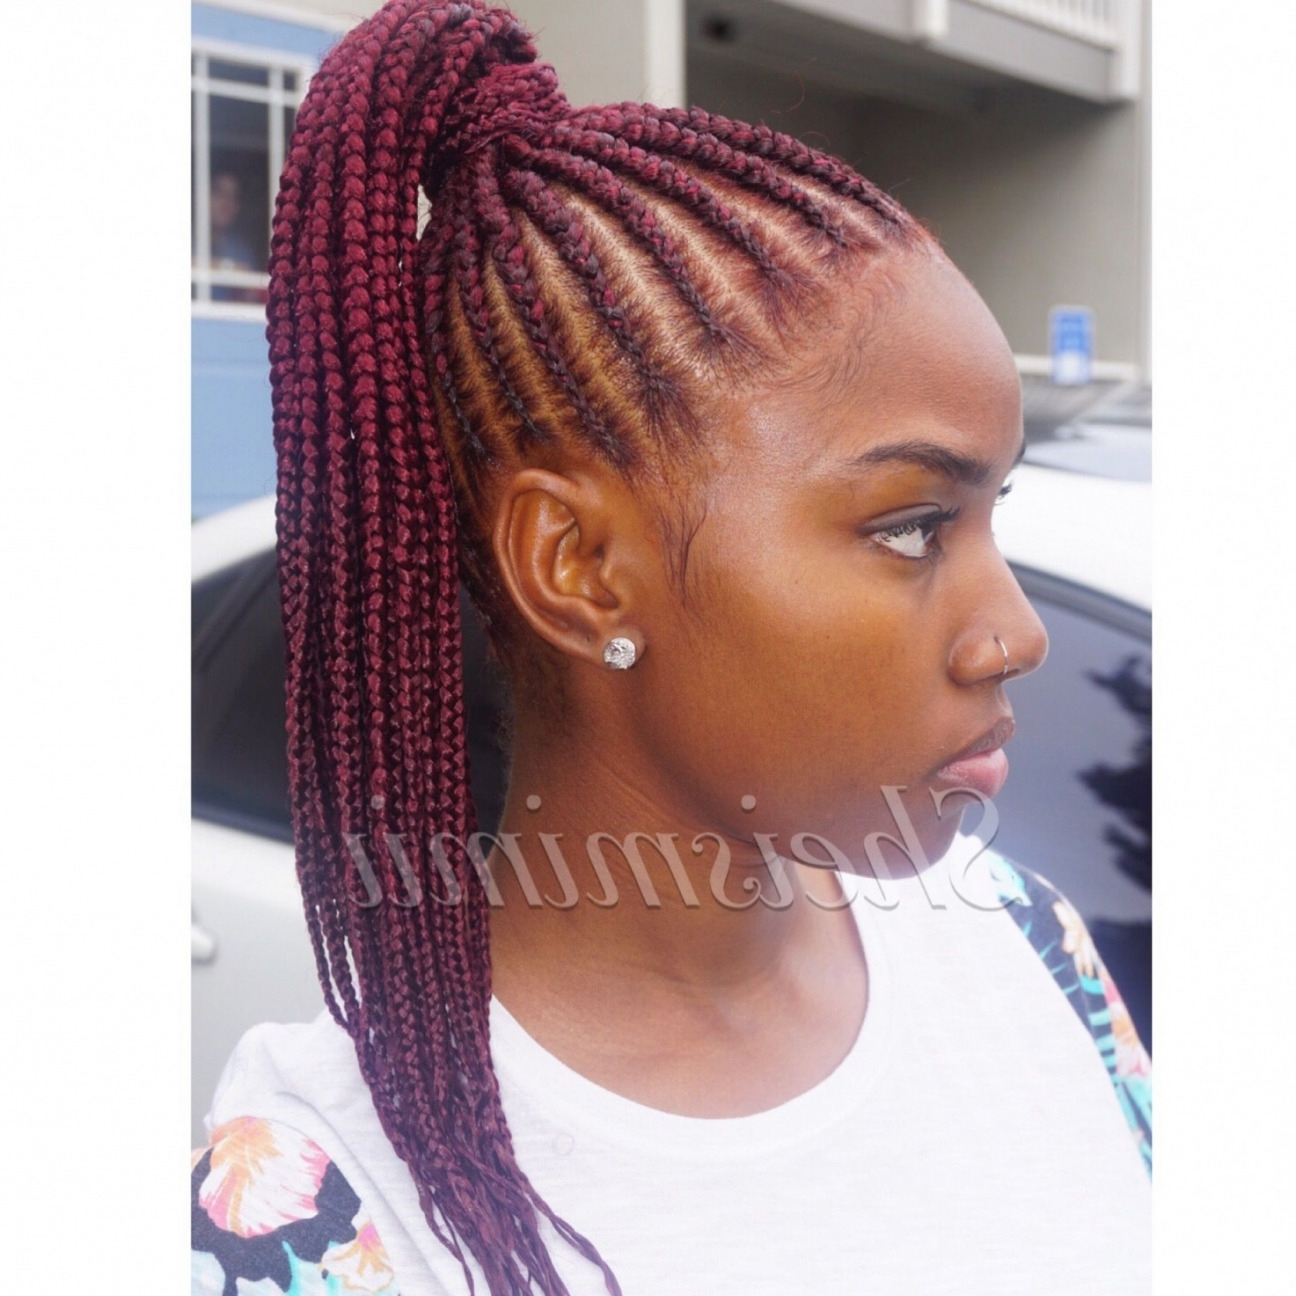 Updo Cornrow Hairstyles For Black Women Unique Stunningly Cute Ghana Intended For Most Popular Cornrow Hairstyles Up In One (View 8 of 15)